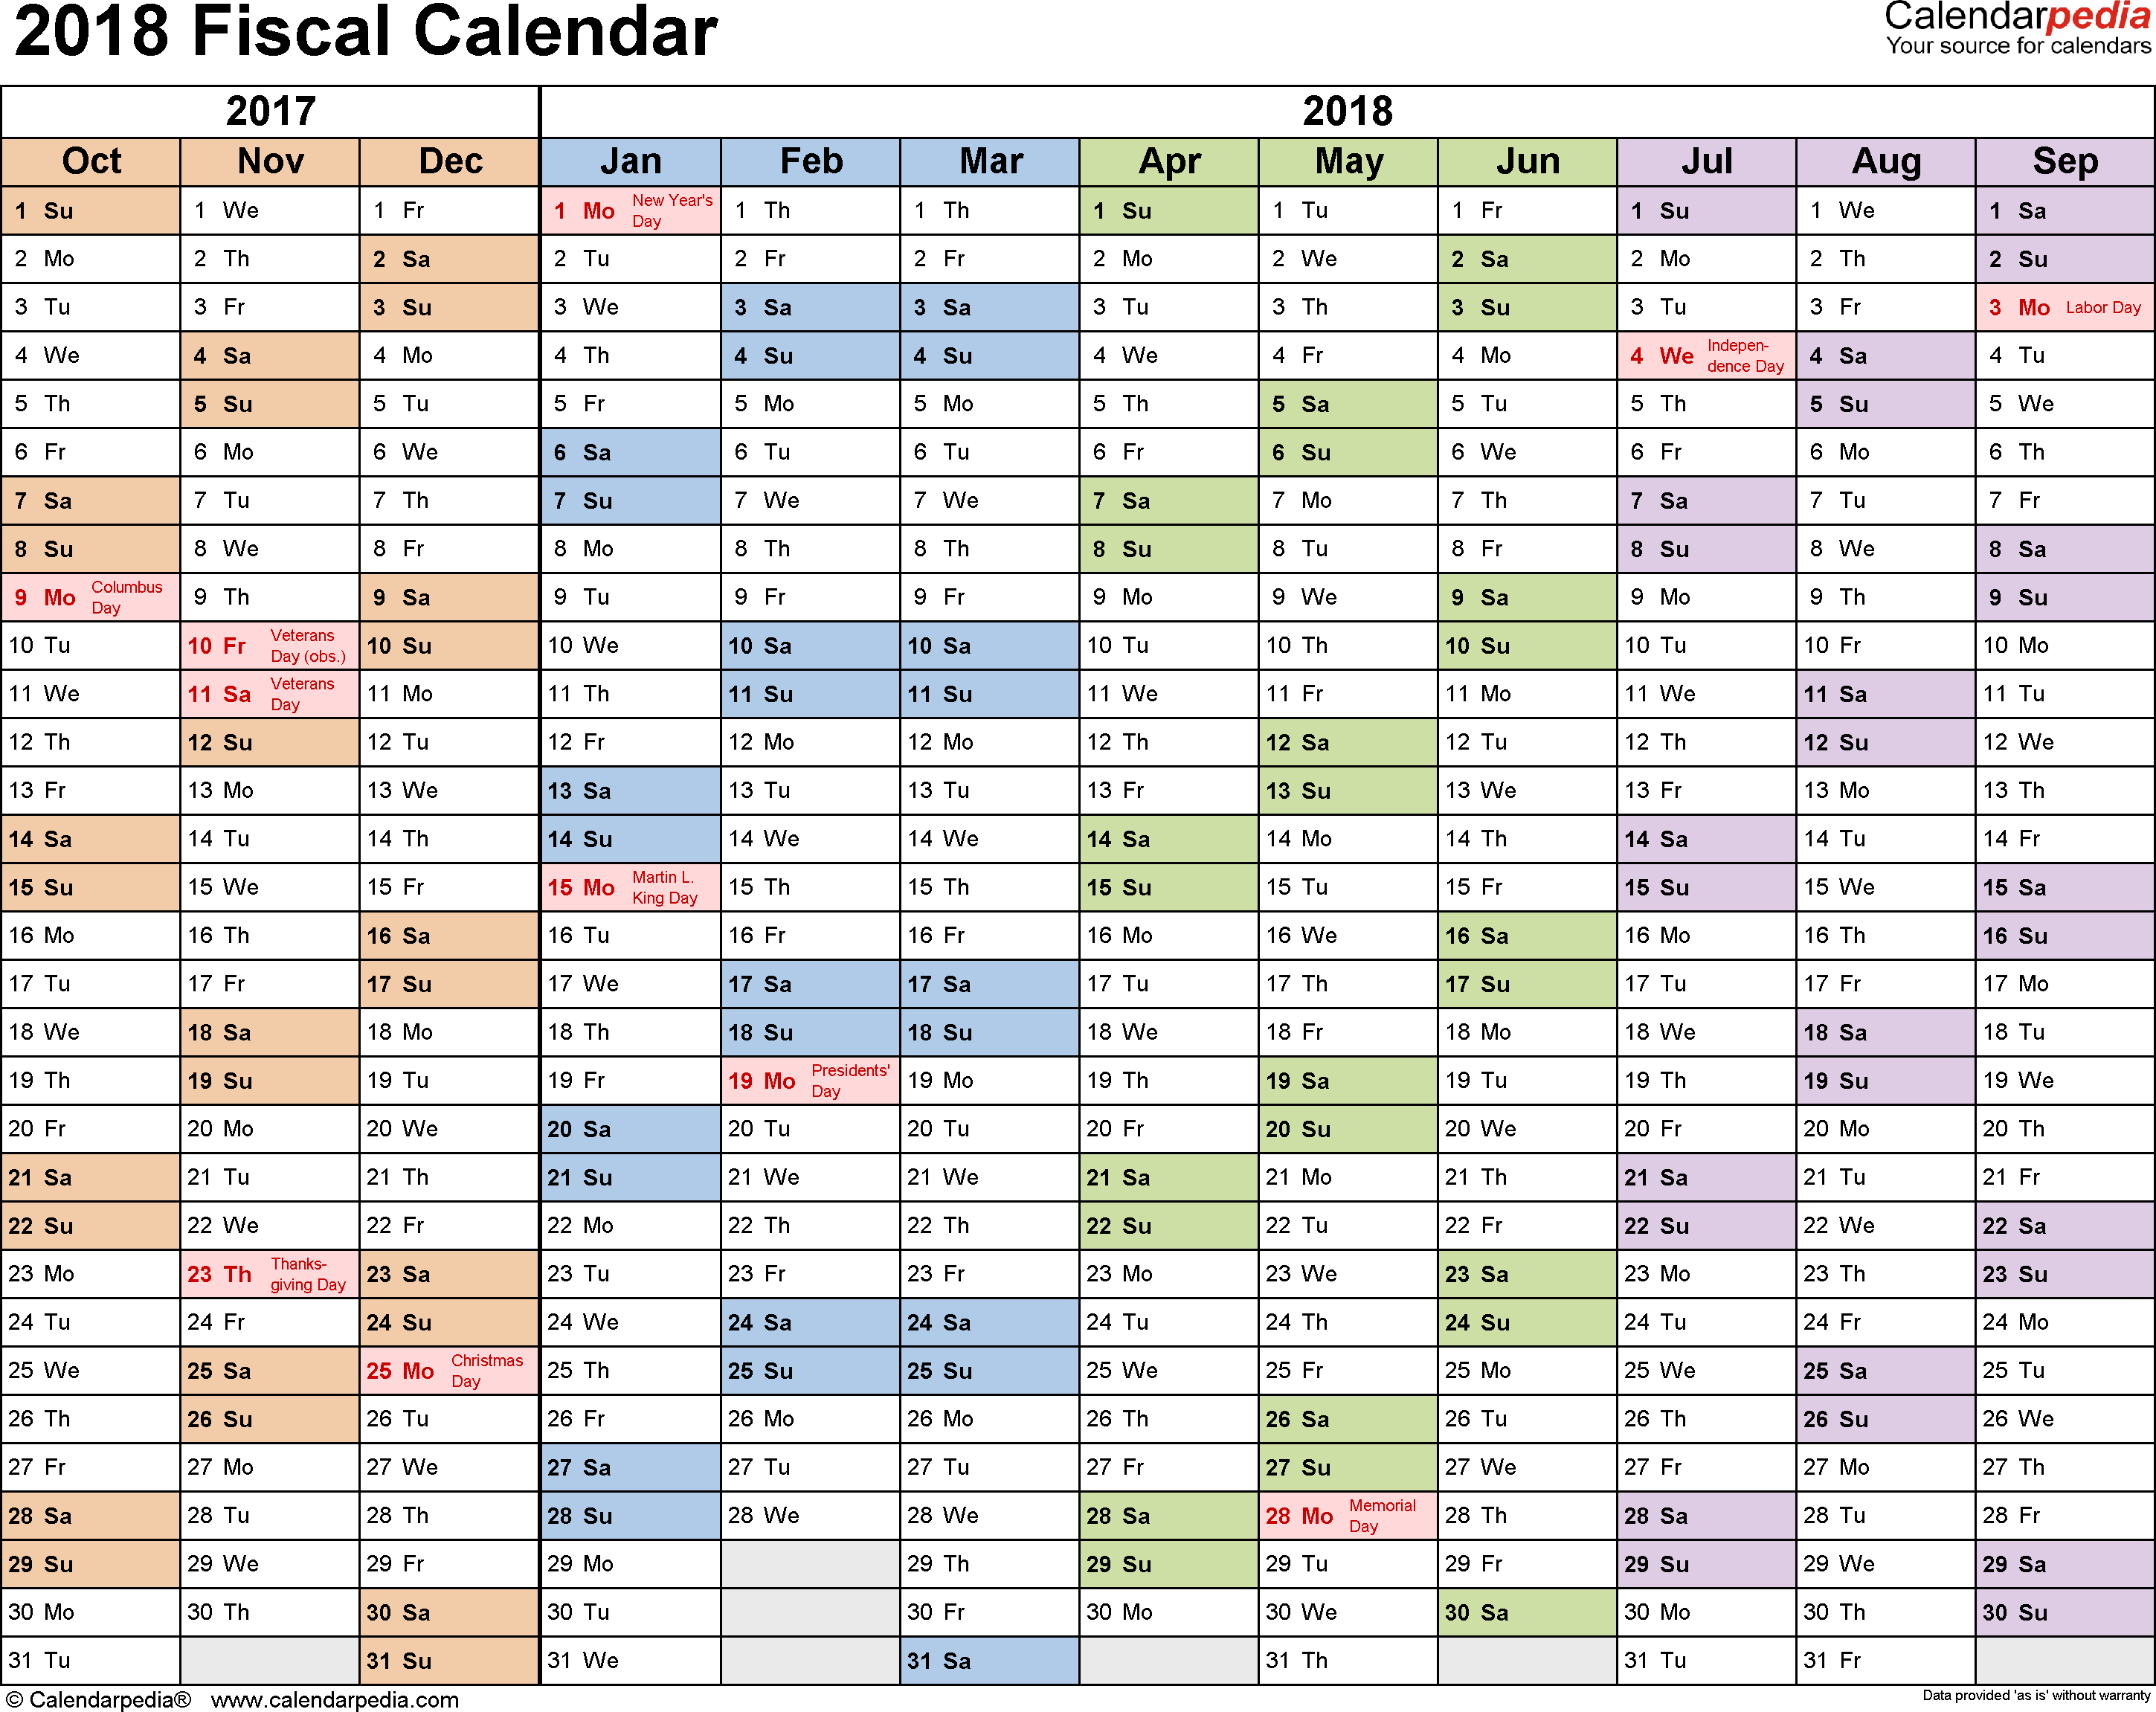 Download Template 1: Fiscal year calendar 2018 for Microsoft Word (.docx file), landscape, 1 page